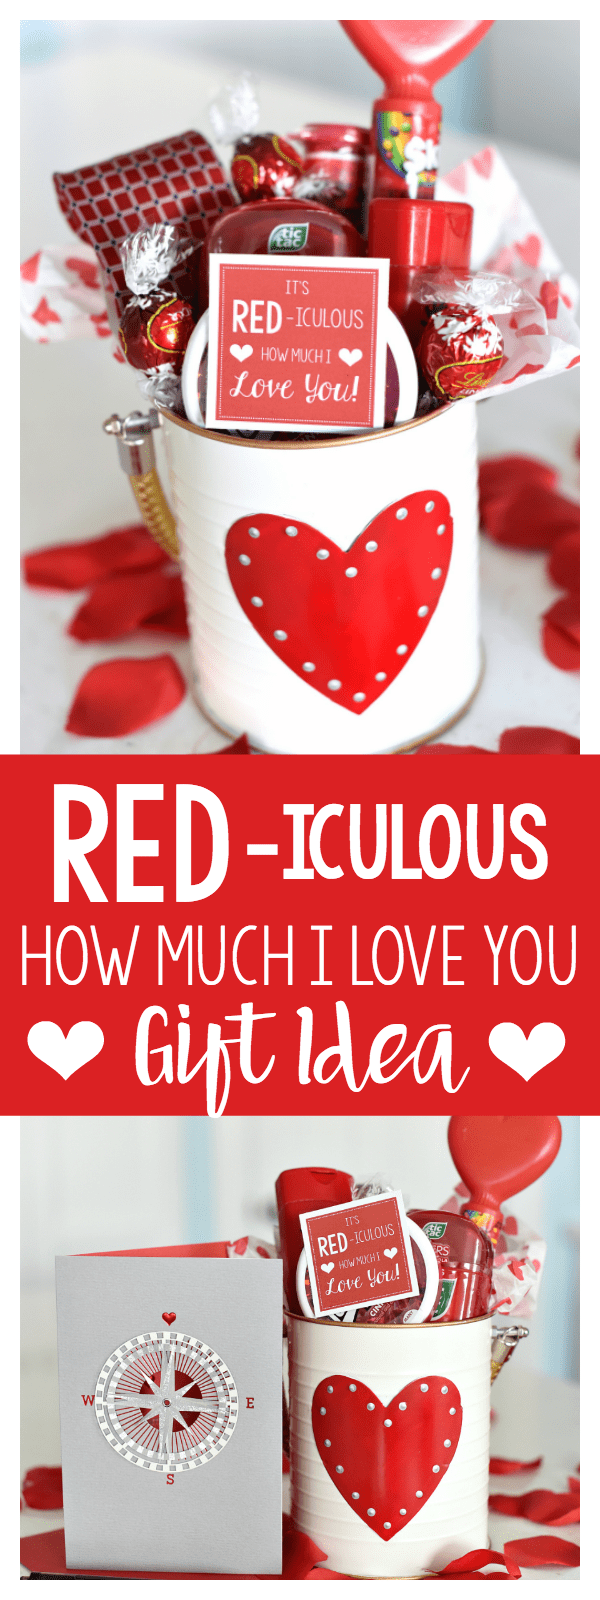 "Cute Valentine's Gift Idea-Red Themed Items and Cute Tag That Says ""It's RED-iculous How Much I LOVE You! This is such a fun and simple Valentine's Day gift, it will be a hit for sure. #valentinesdaygift #valentinegiftidea #valentinegift #gifts"